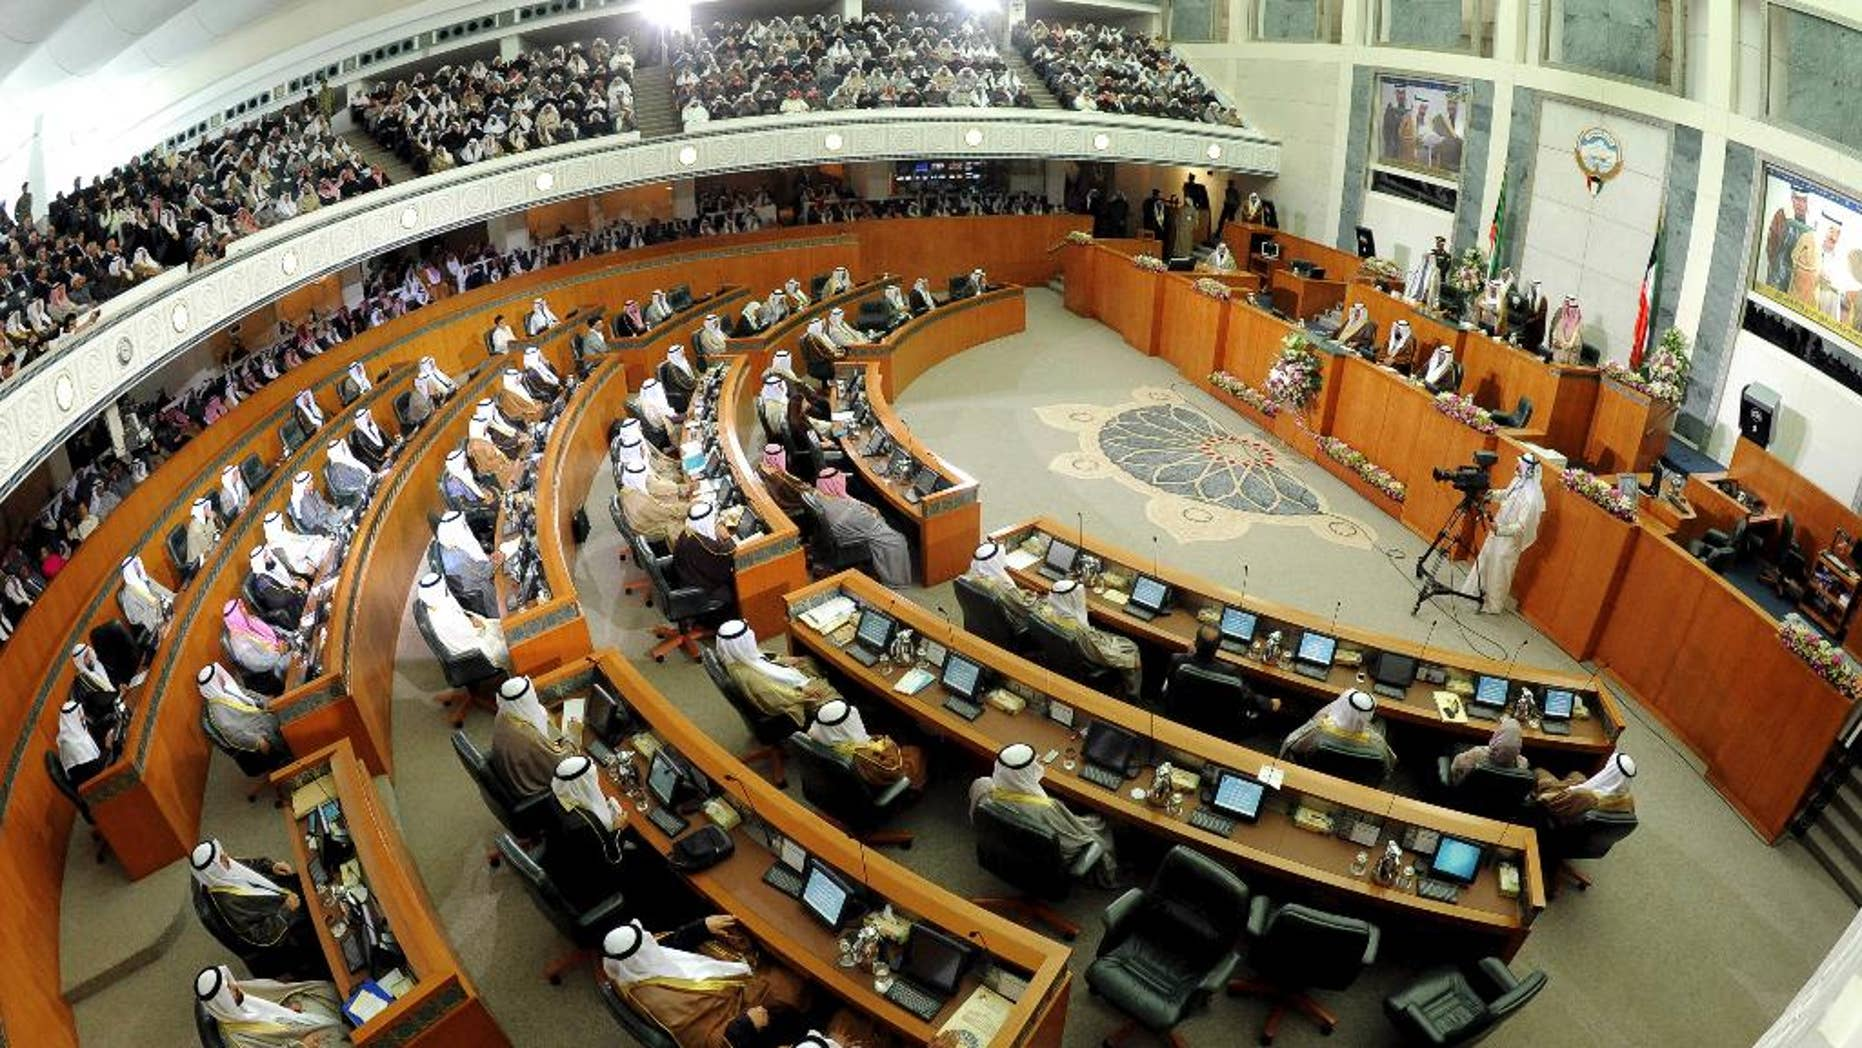 """FILE - This Dec. 16, 2012 file photo shows a General view of Kuwait's National Assembly during the inauguration of the 14th Legislative Term of the National Assembly in Kuwait. Kuwait's Cabinet has resigned and its parliament was dissolved Sunday, Oct. 16, 2016, over a """"lack of cooperation,"""" setting the stage for early elections. Kuwait's state-run television and news agency made the announcement after an emergency government meeting. In a decree, Kuwait's ruling emir Sheikh Sabah Al Ahmad Al Sabah said """"given the circumstances in the region ... and the security challenges"""" he had ordered the parliament dissolved. (AP Photo/Gustavo Ferrari, File)"""